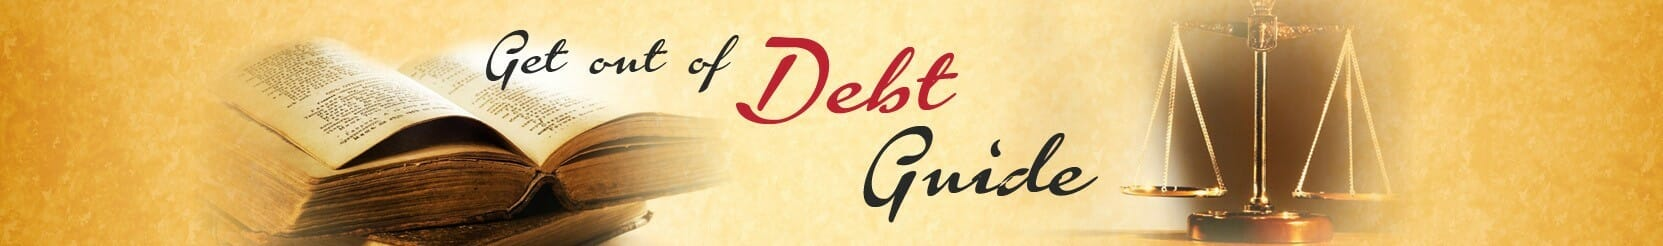 Get out of debt San Diego